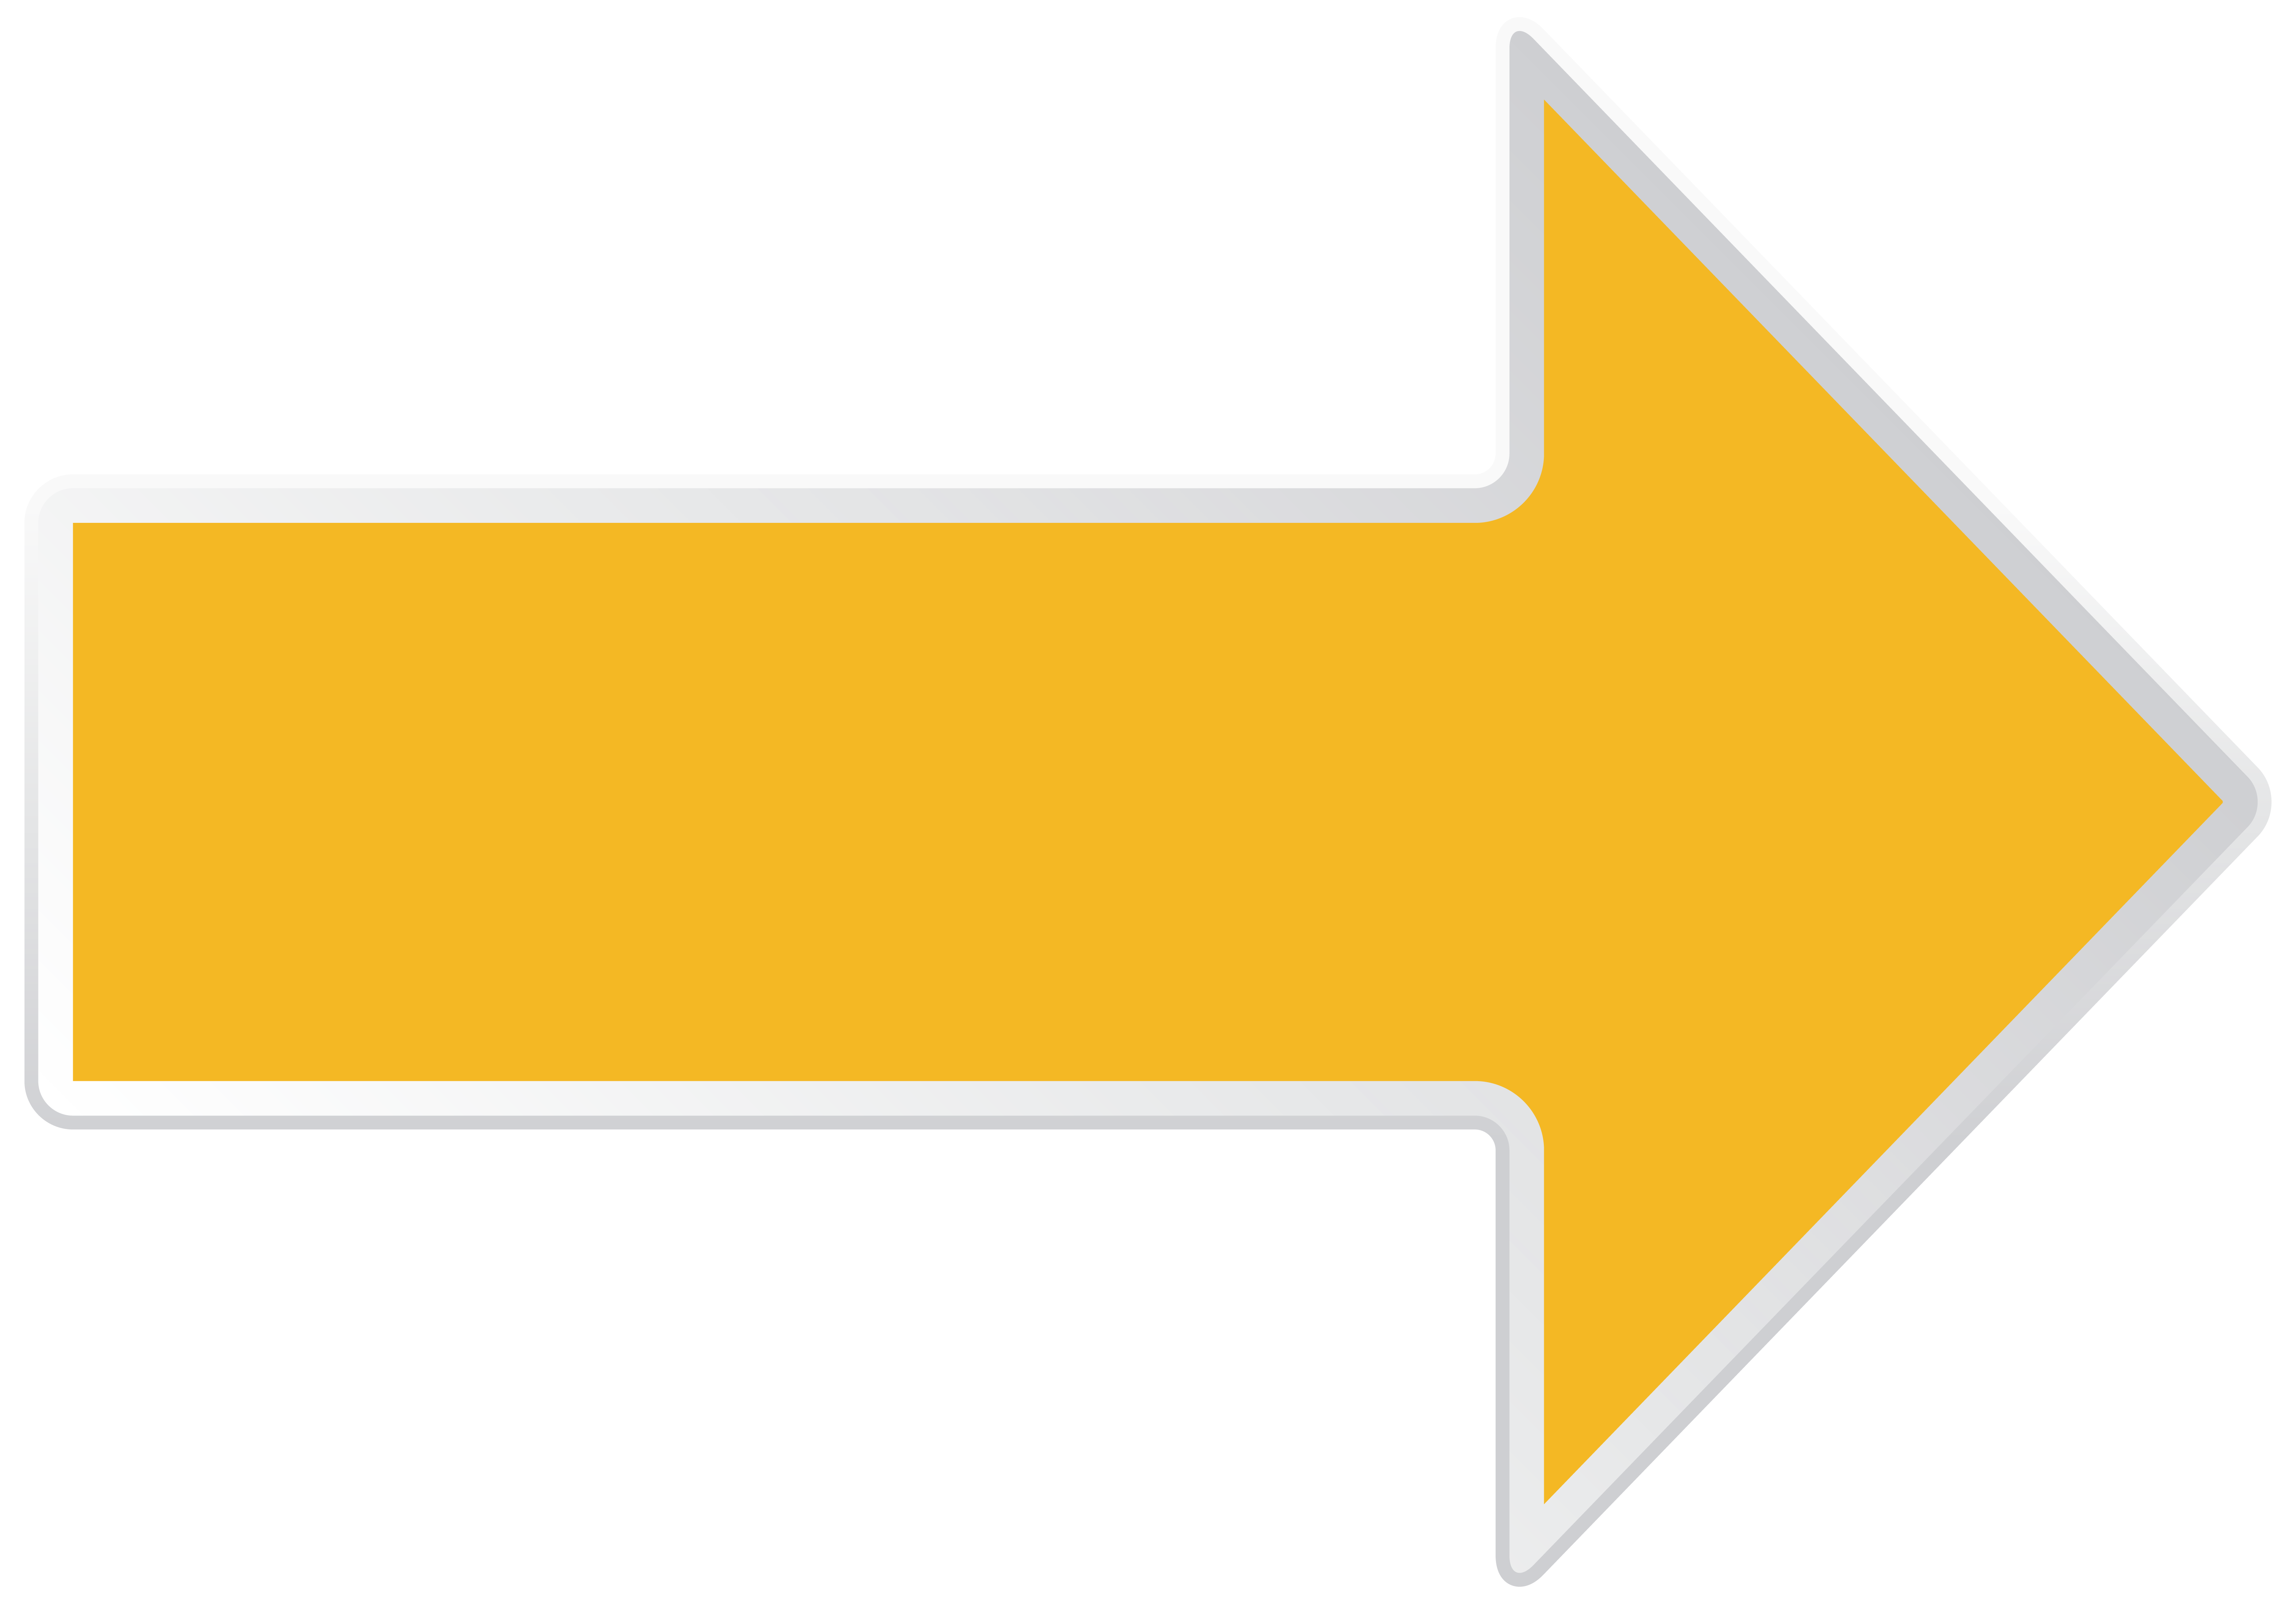 Arrow Yellow Right Transparent PNG Clip Art Image.